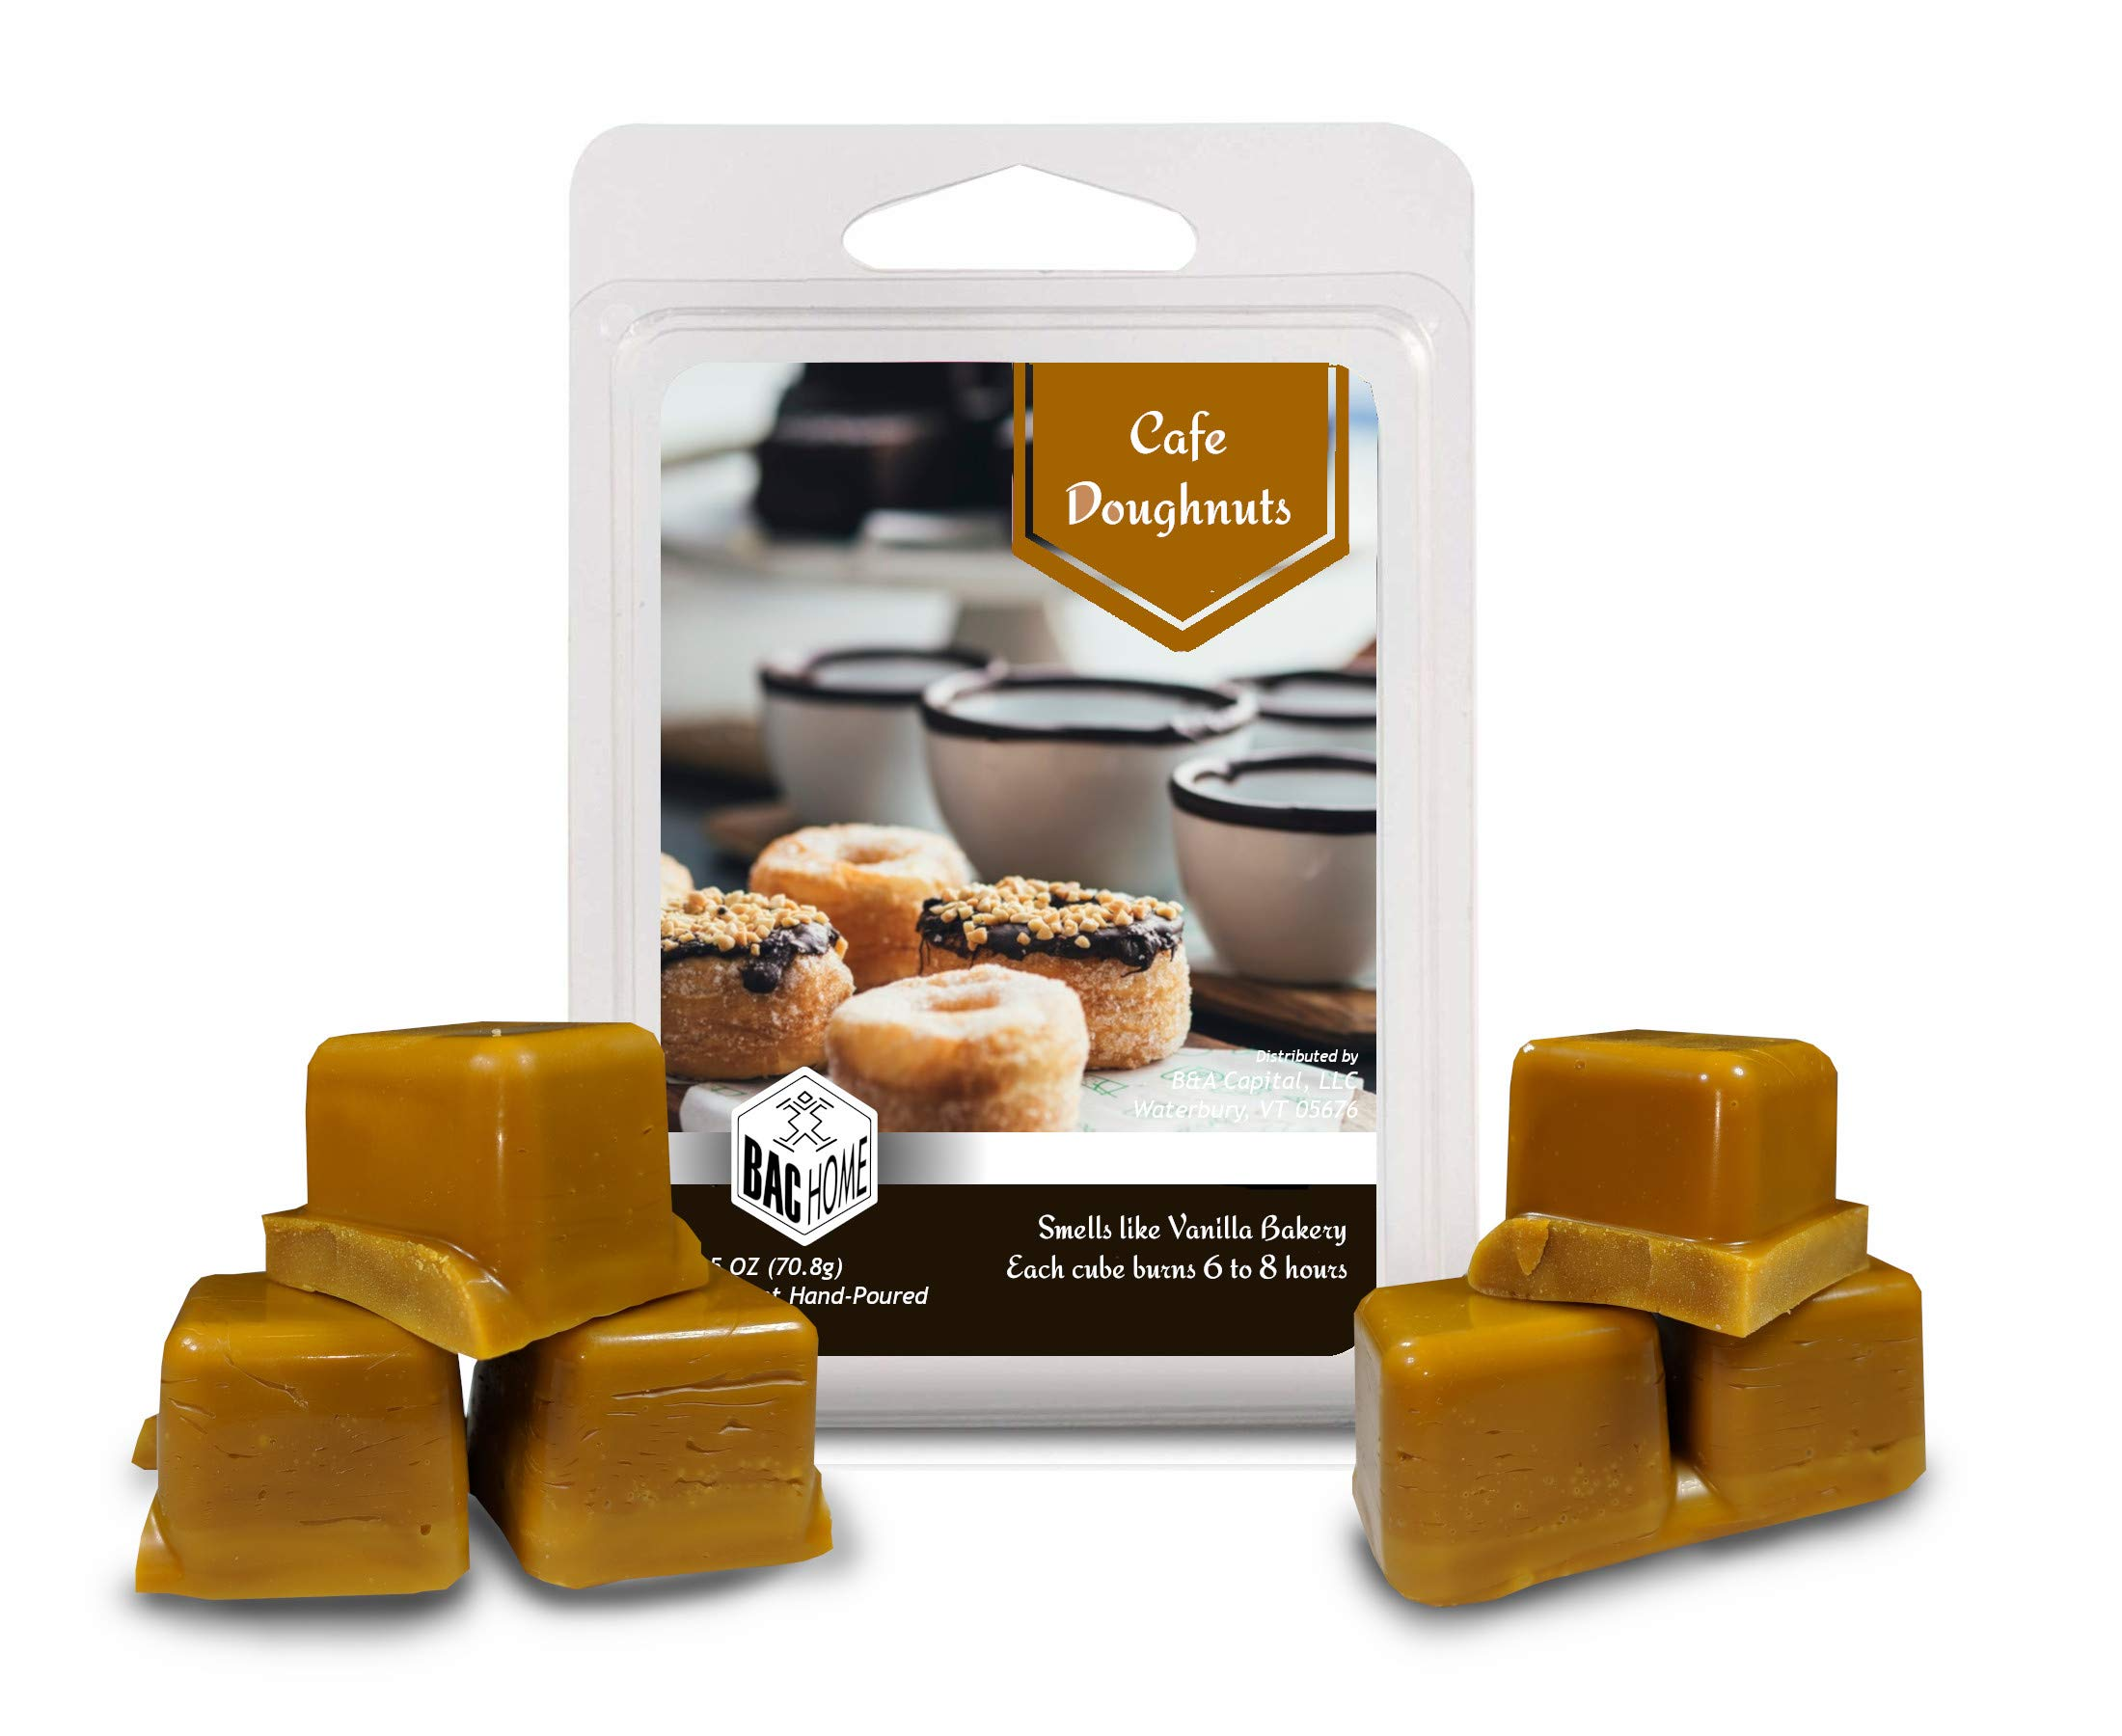 4 Pack - Cafe Bakery Soy Blend Scented Wax Melts Wax Cubes, 10.0 oz, [24 Cubes] with Coffee Shop, Blue Berry Scone, Maple Pumpkin Muffin and Cafe Doughnuts by BAC Home (Image #3)